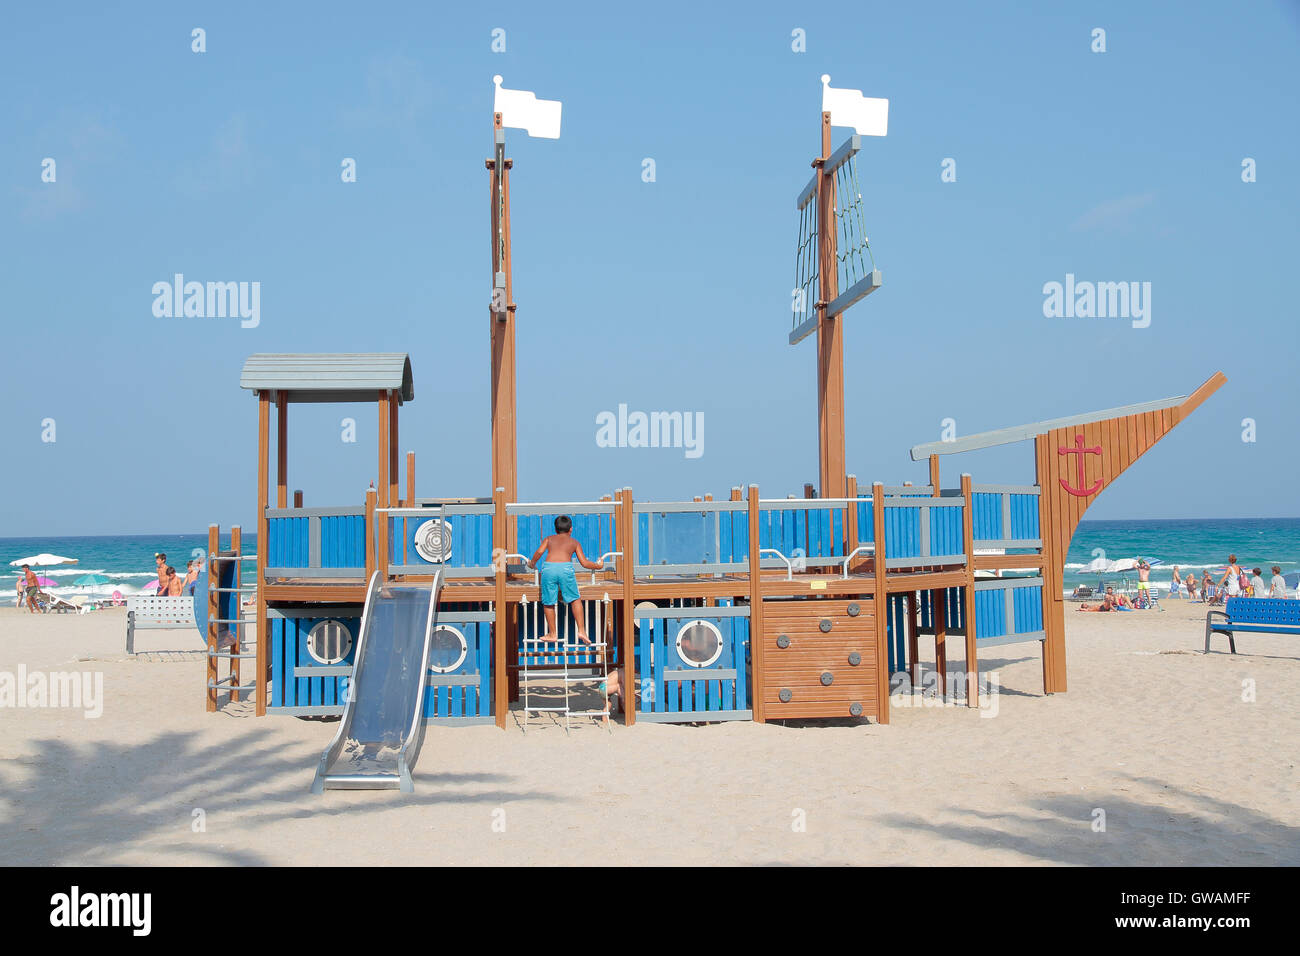 beach landscape with a boat shaped toboggan - Stock Image